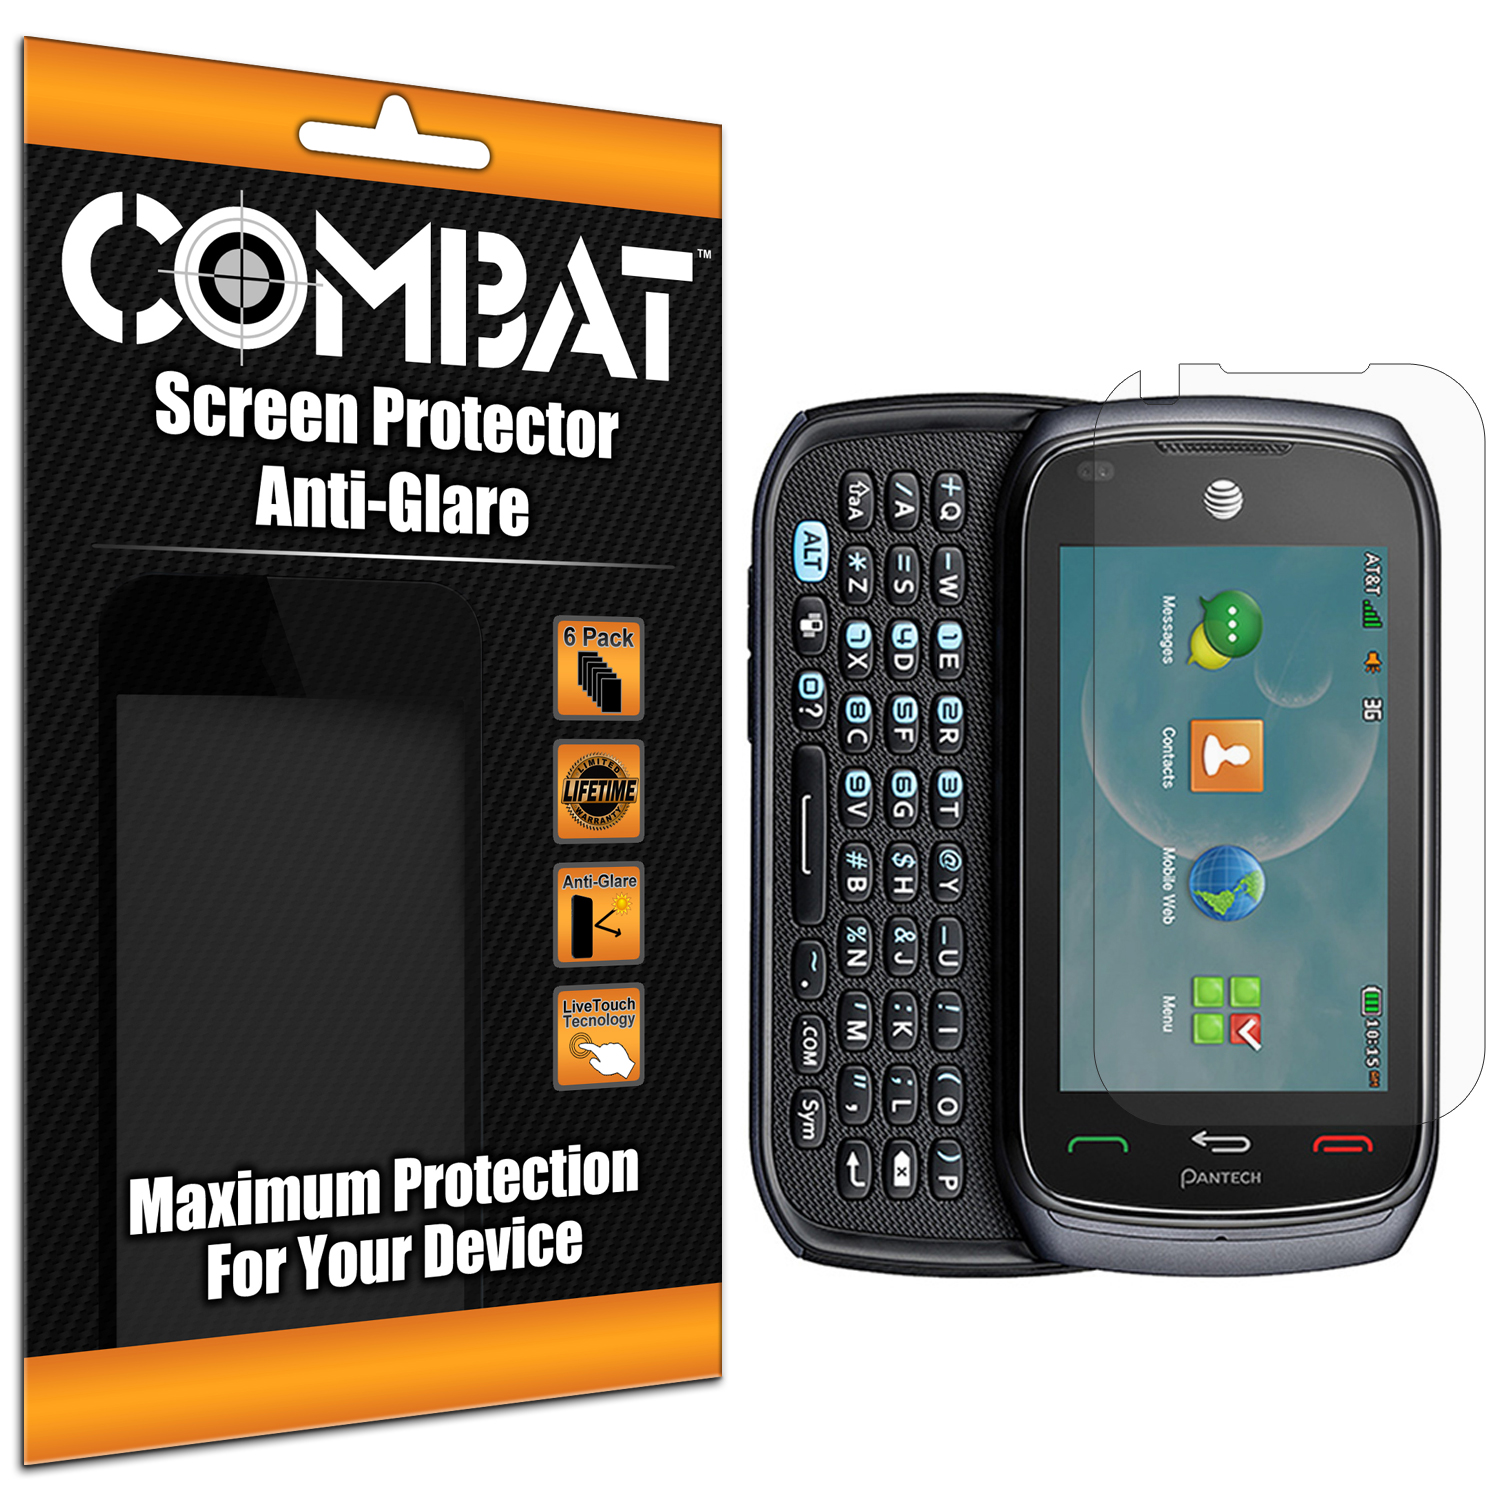 Pantech Vybe Combat 6 Pack Anti-Glare Matte Screen Protector